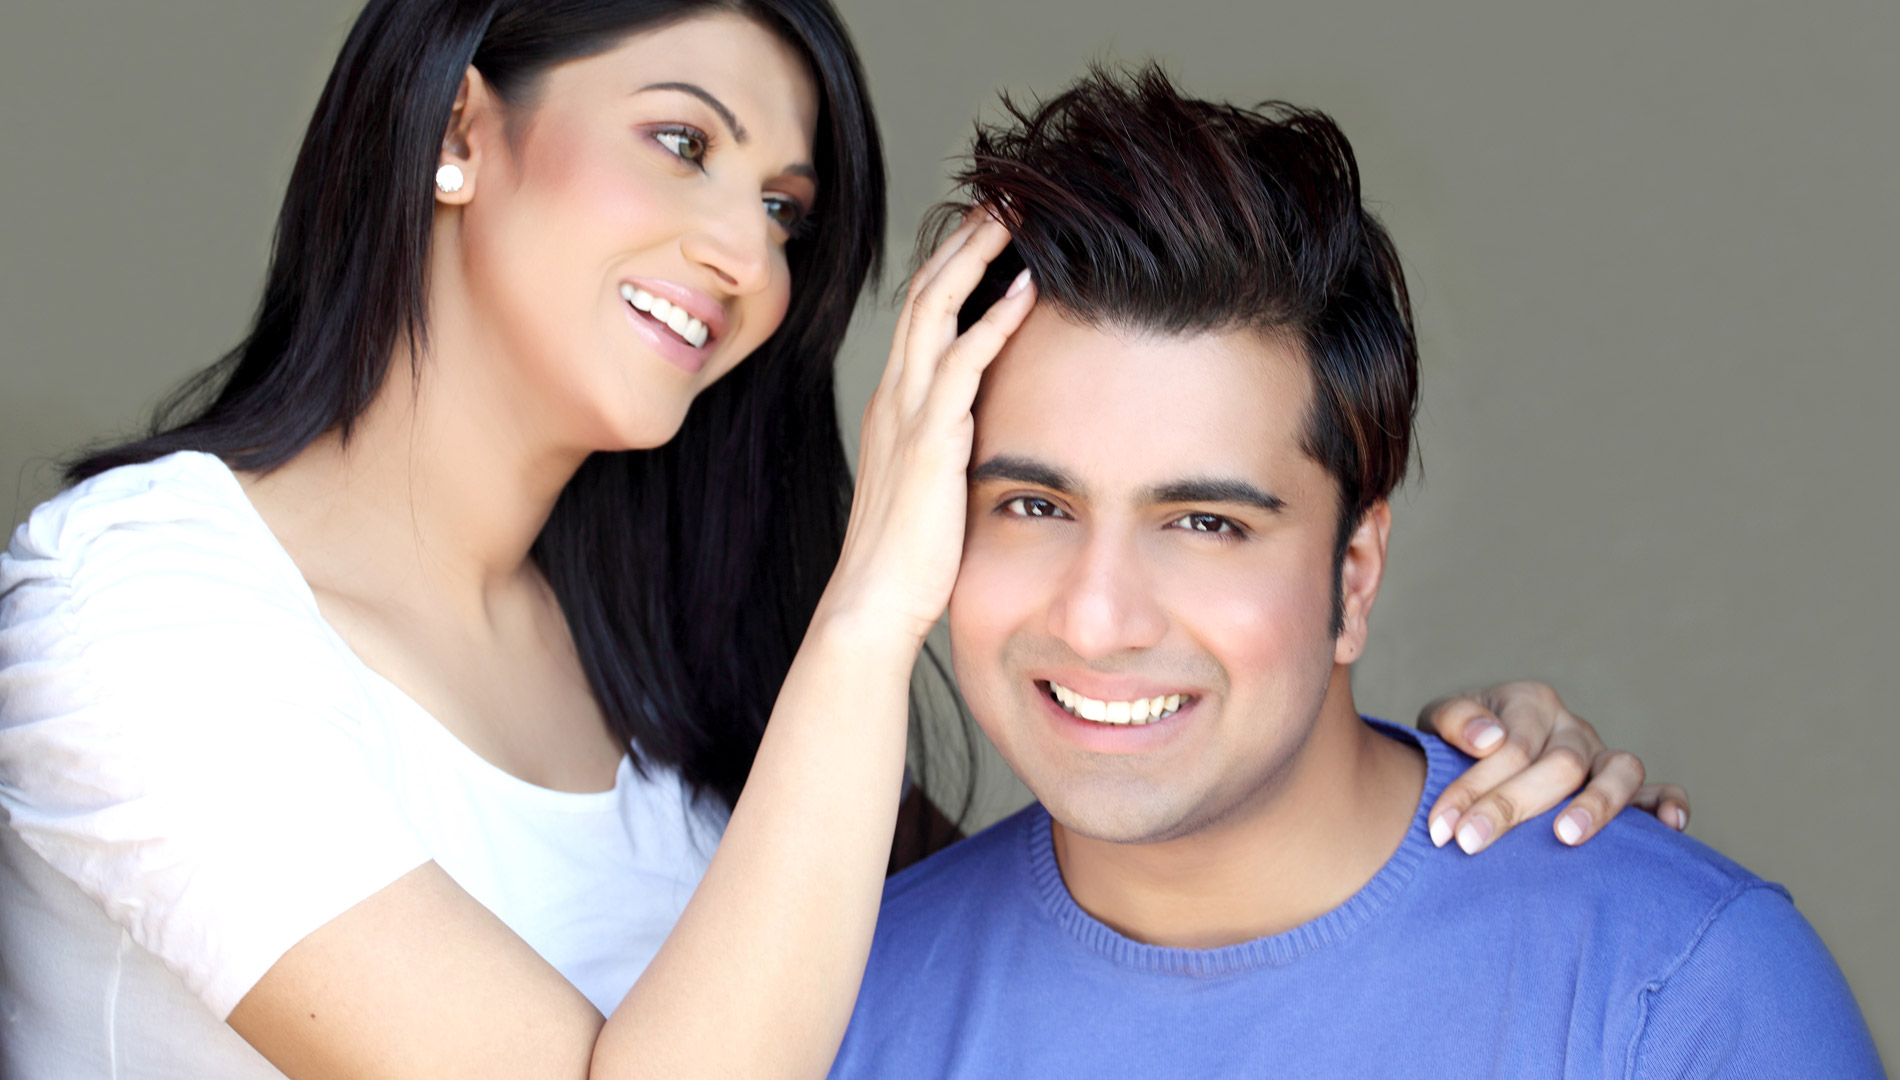 Sana and Fakhar After Hair Transplant